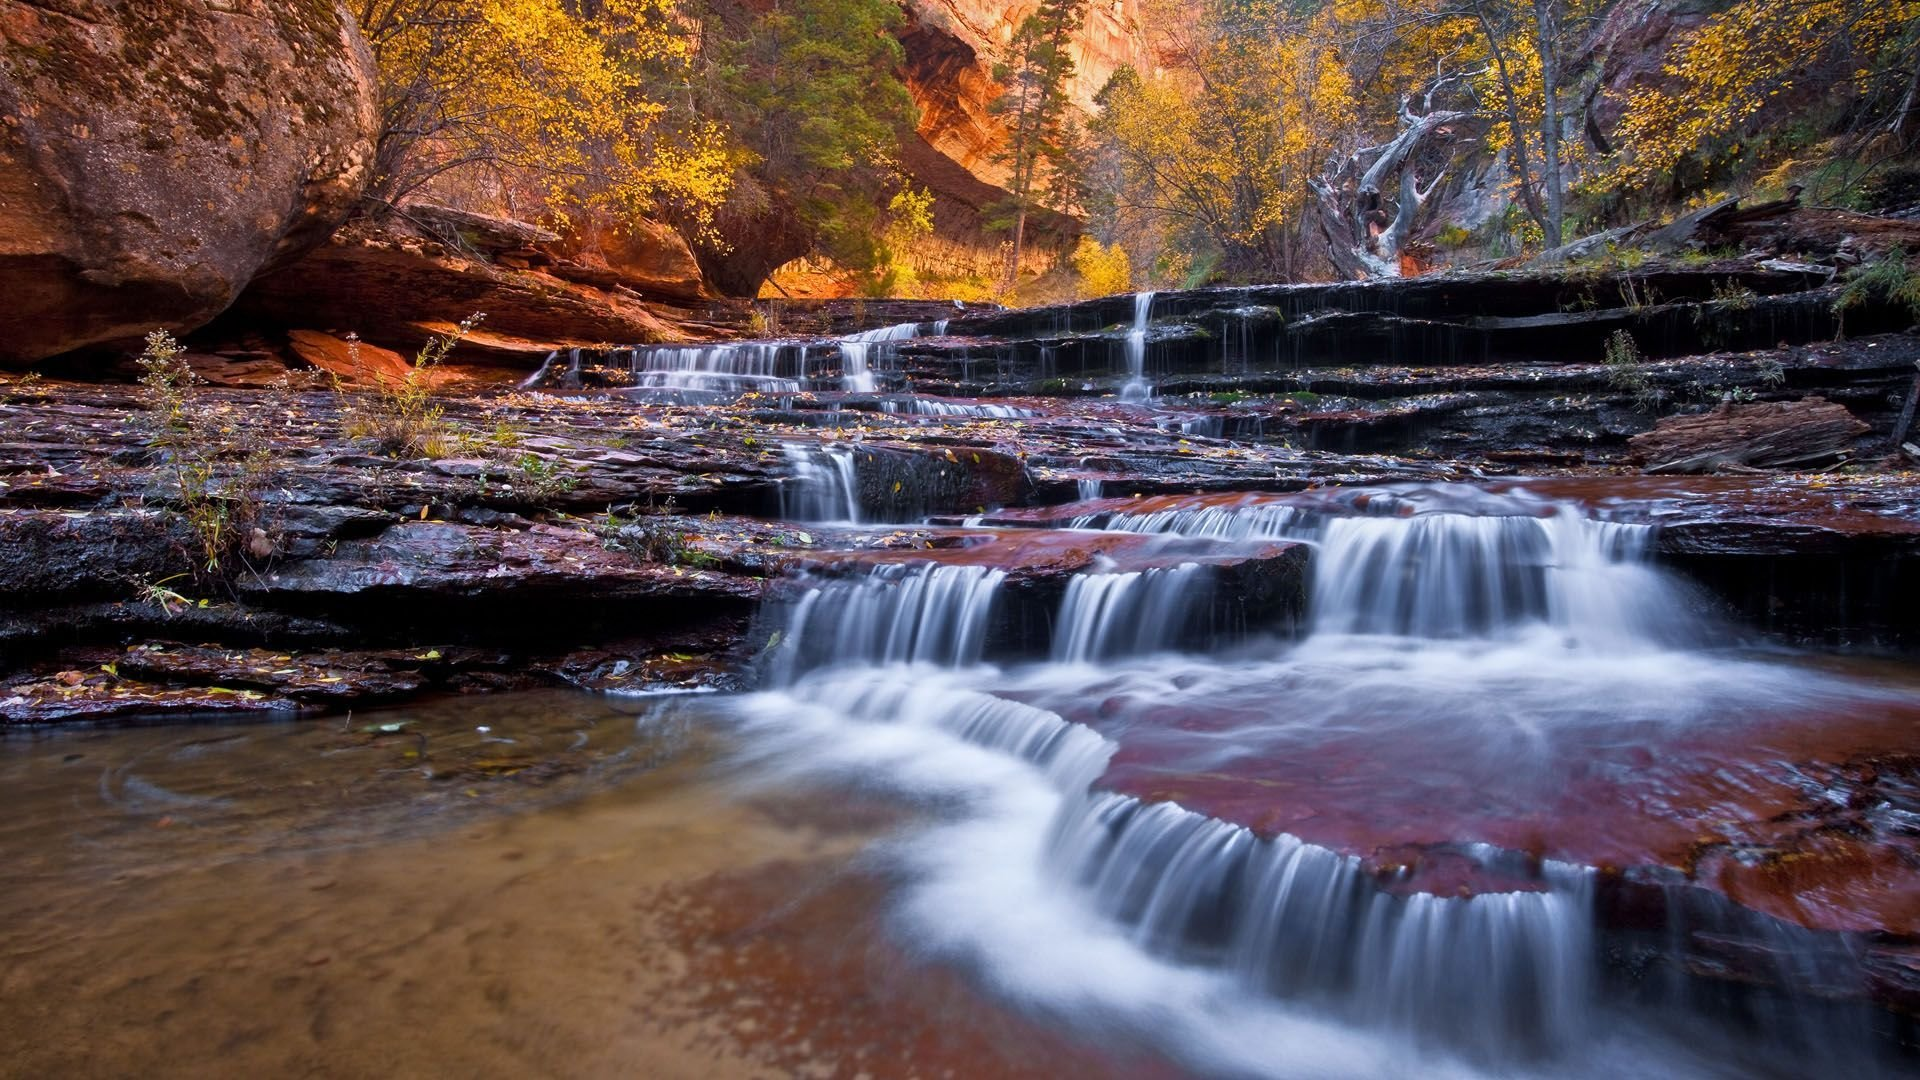 Small creek in Zion National Park Wallpaper 1920x1080